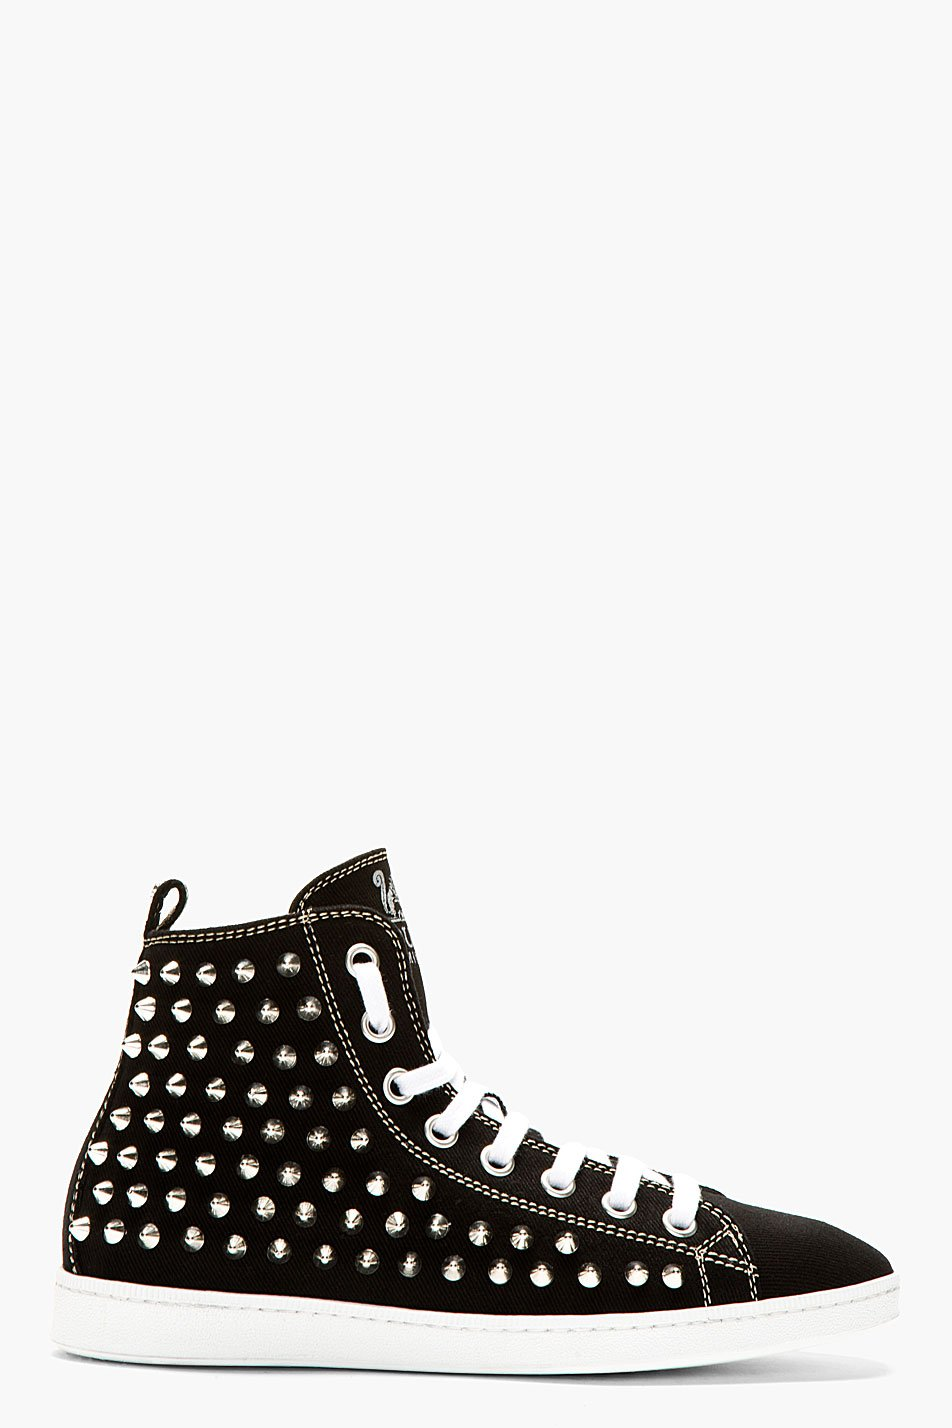 Dsquared2 black canvas spike stud high_top sneakers